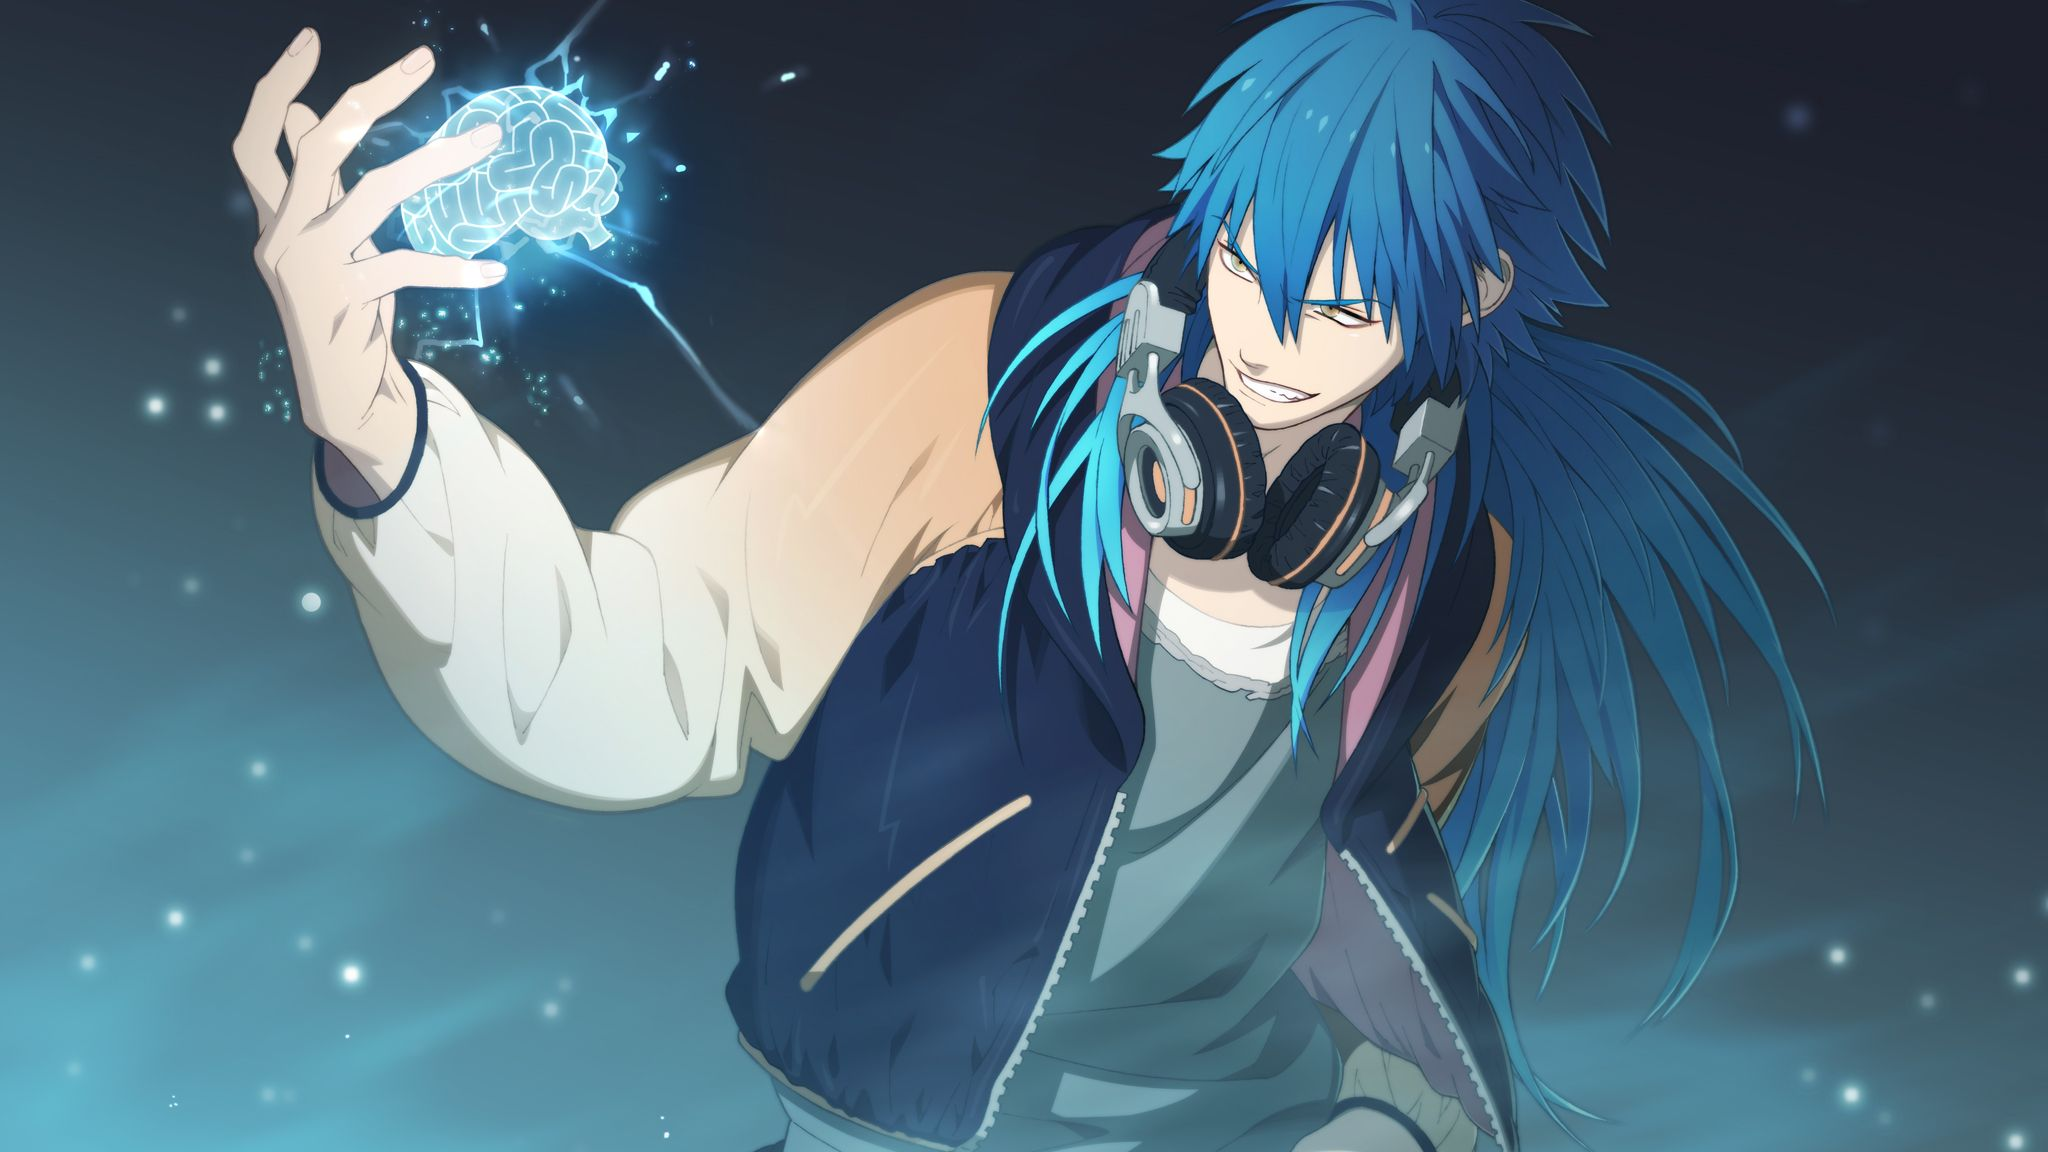 Aoba Using His Scrap Power In A Game Of Rhyme Except That He